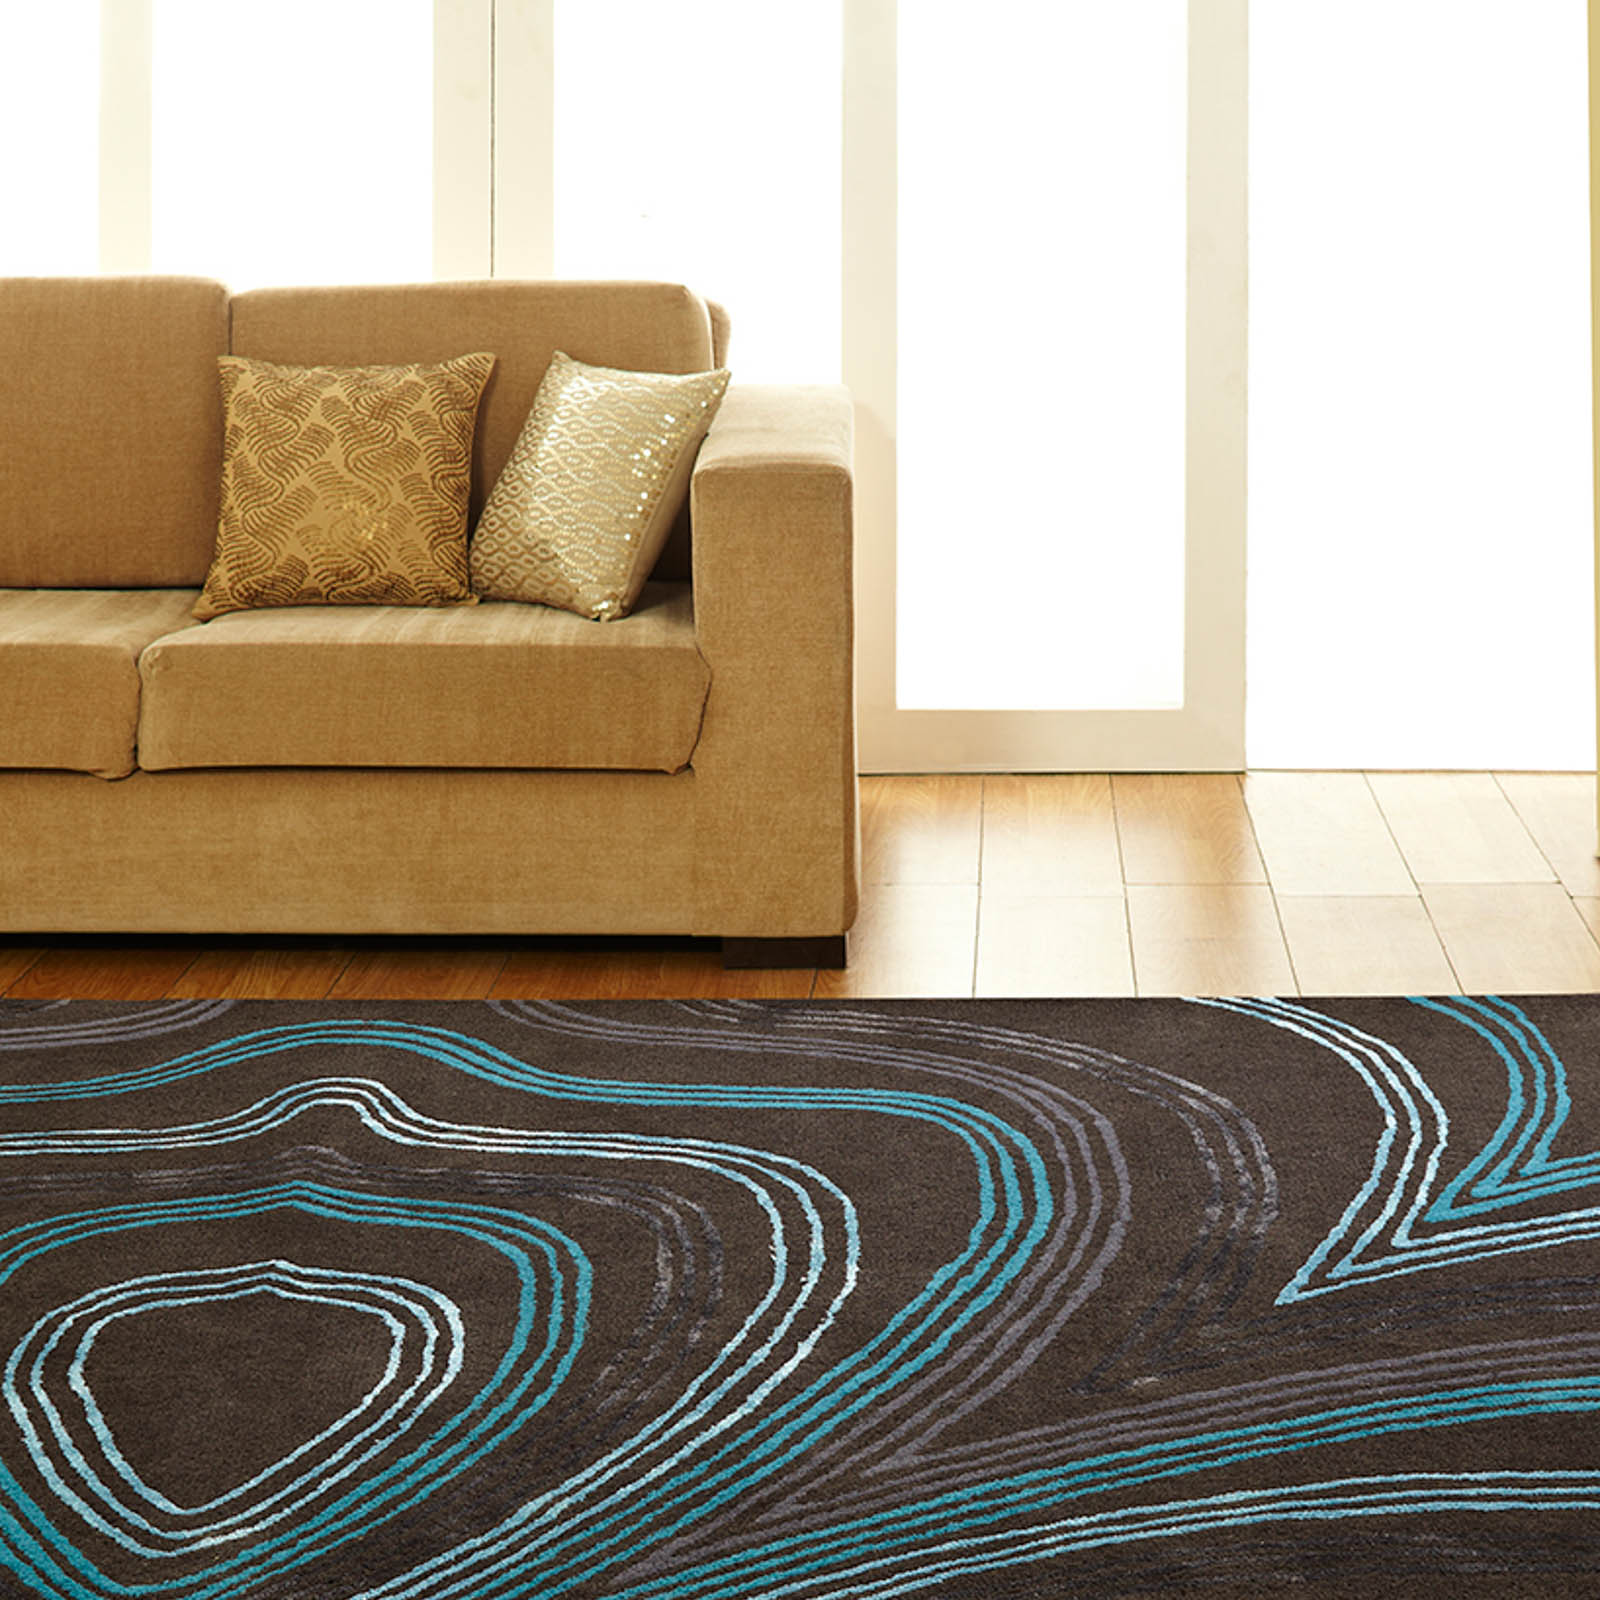 Unique Retro Rugs in Charcoal Blue